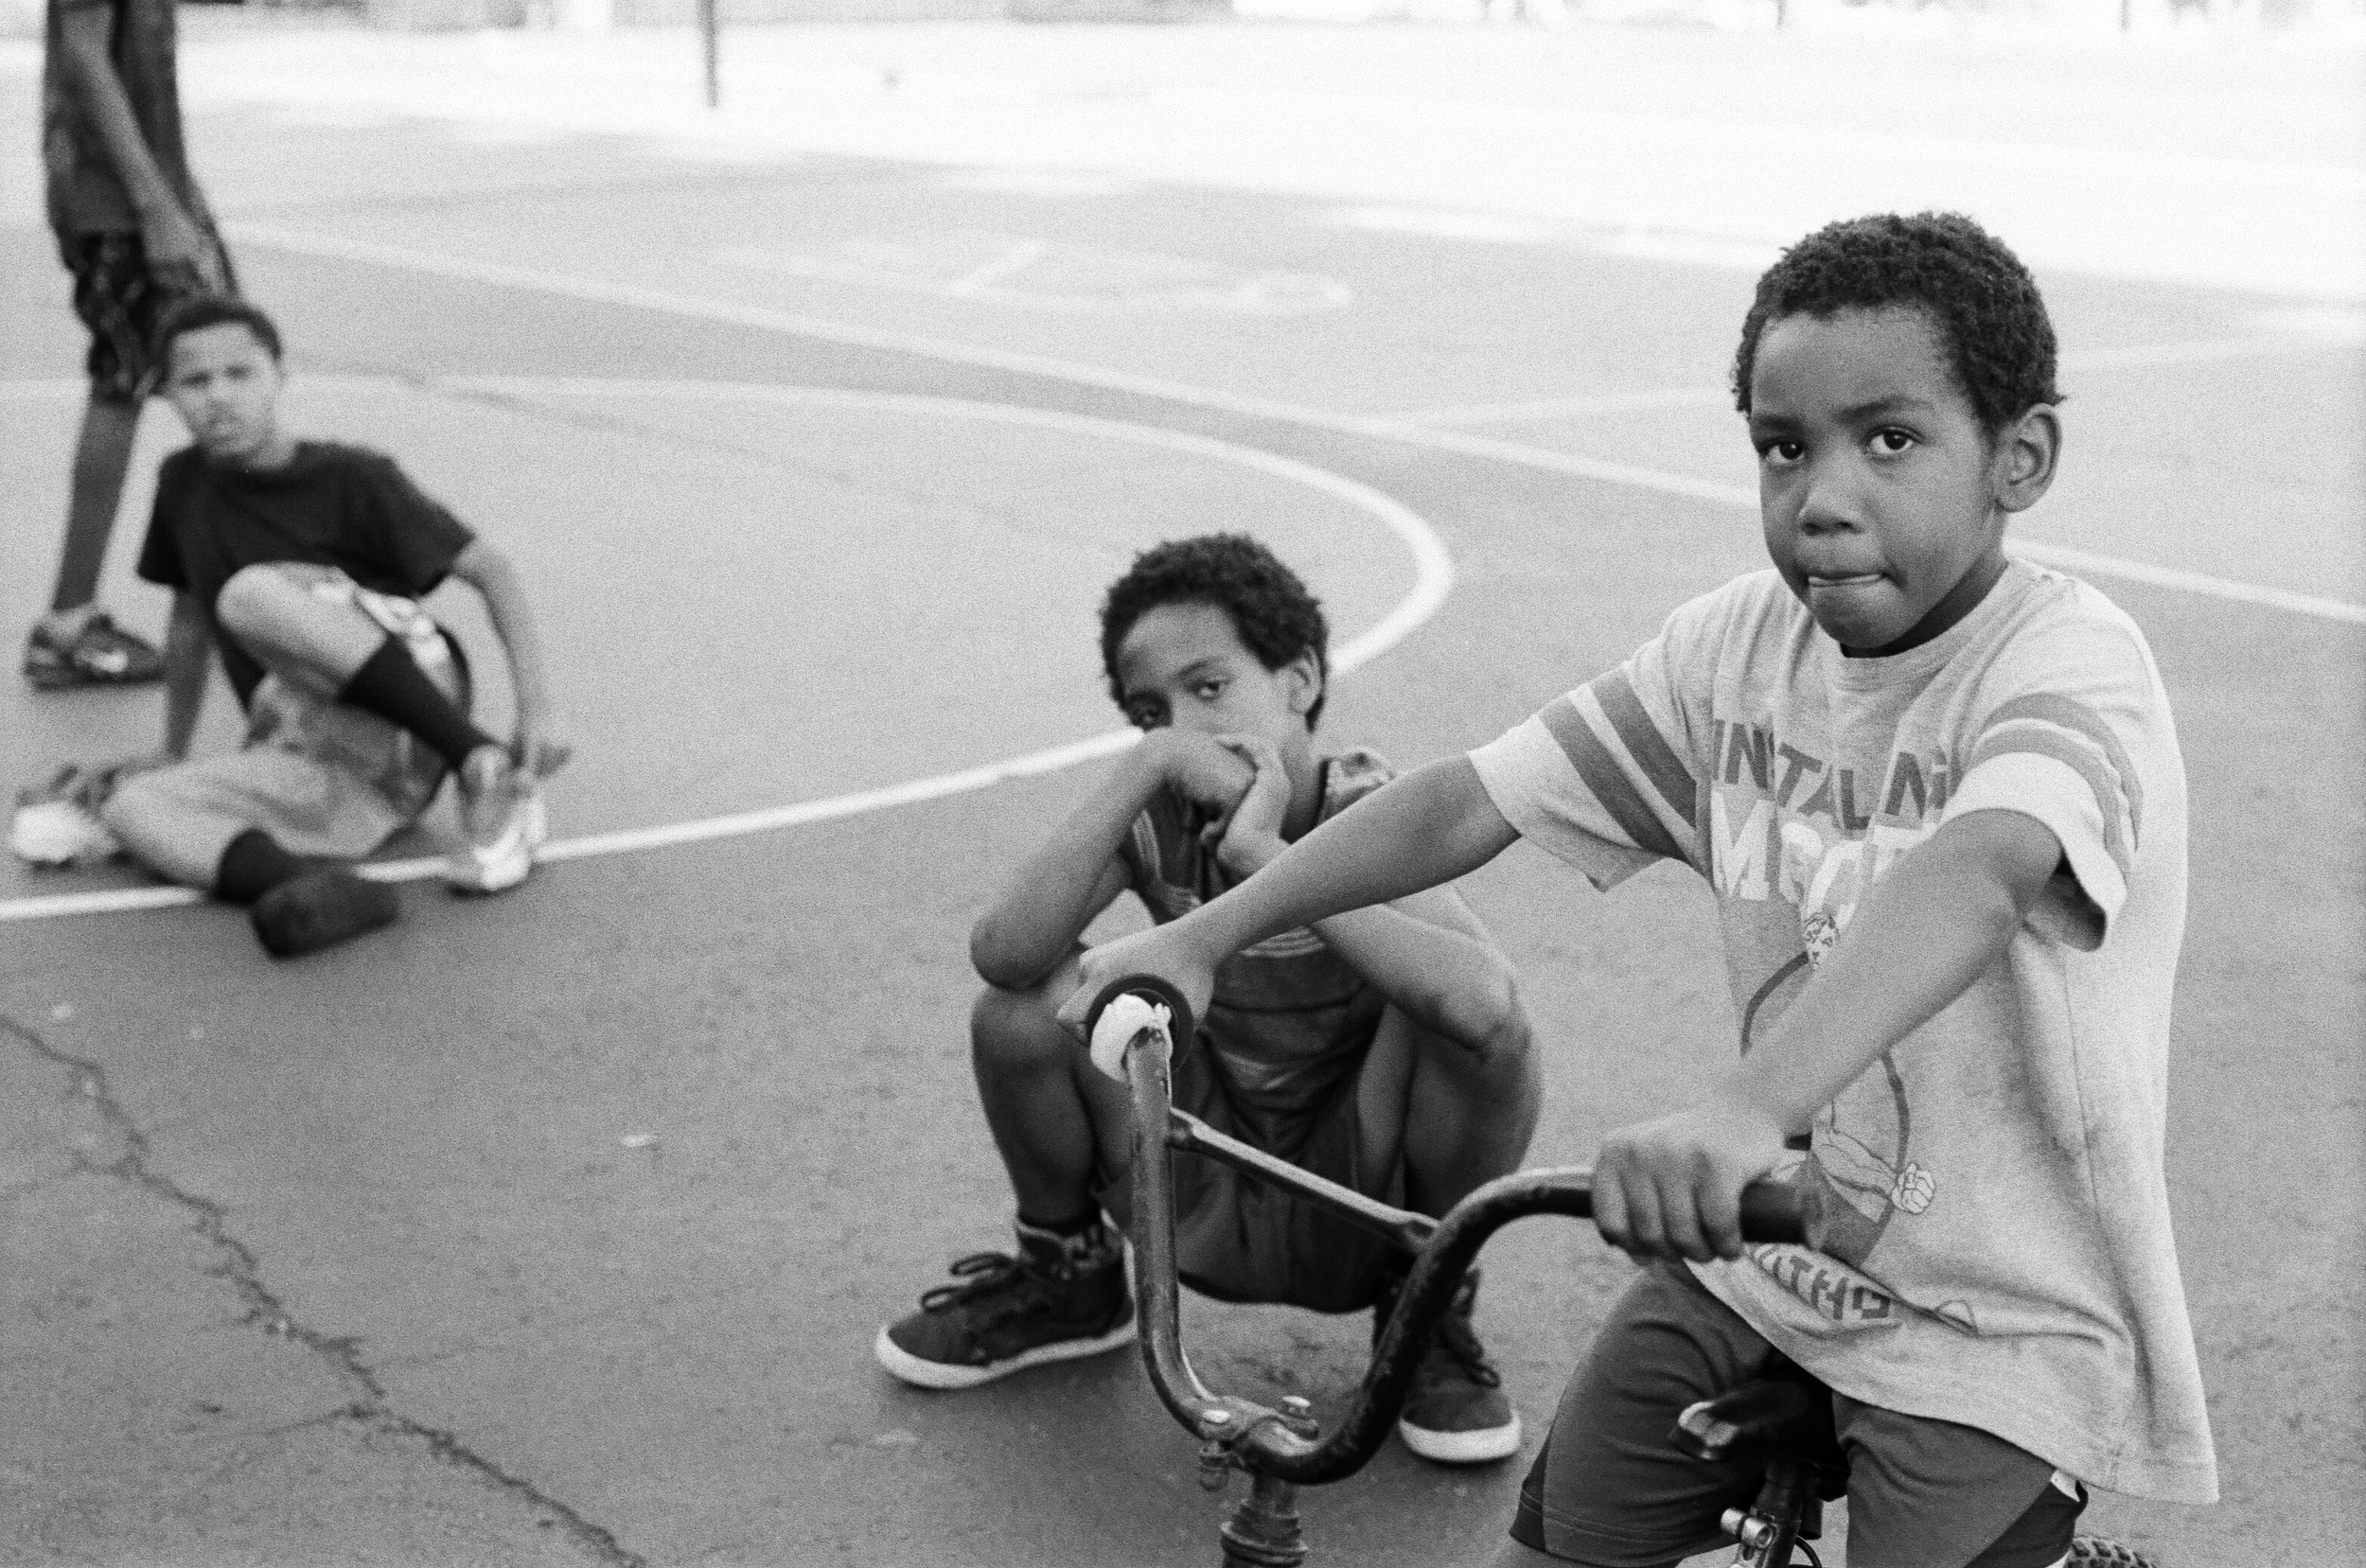 Boys on a playground.   Staten Island, New York City. 2018.